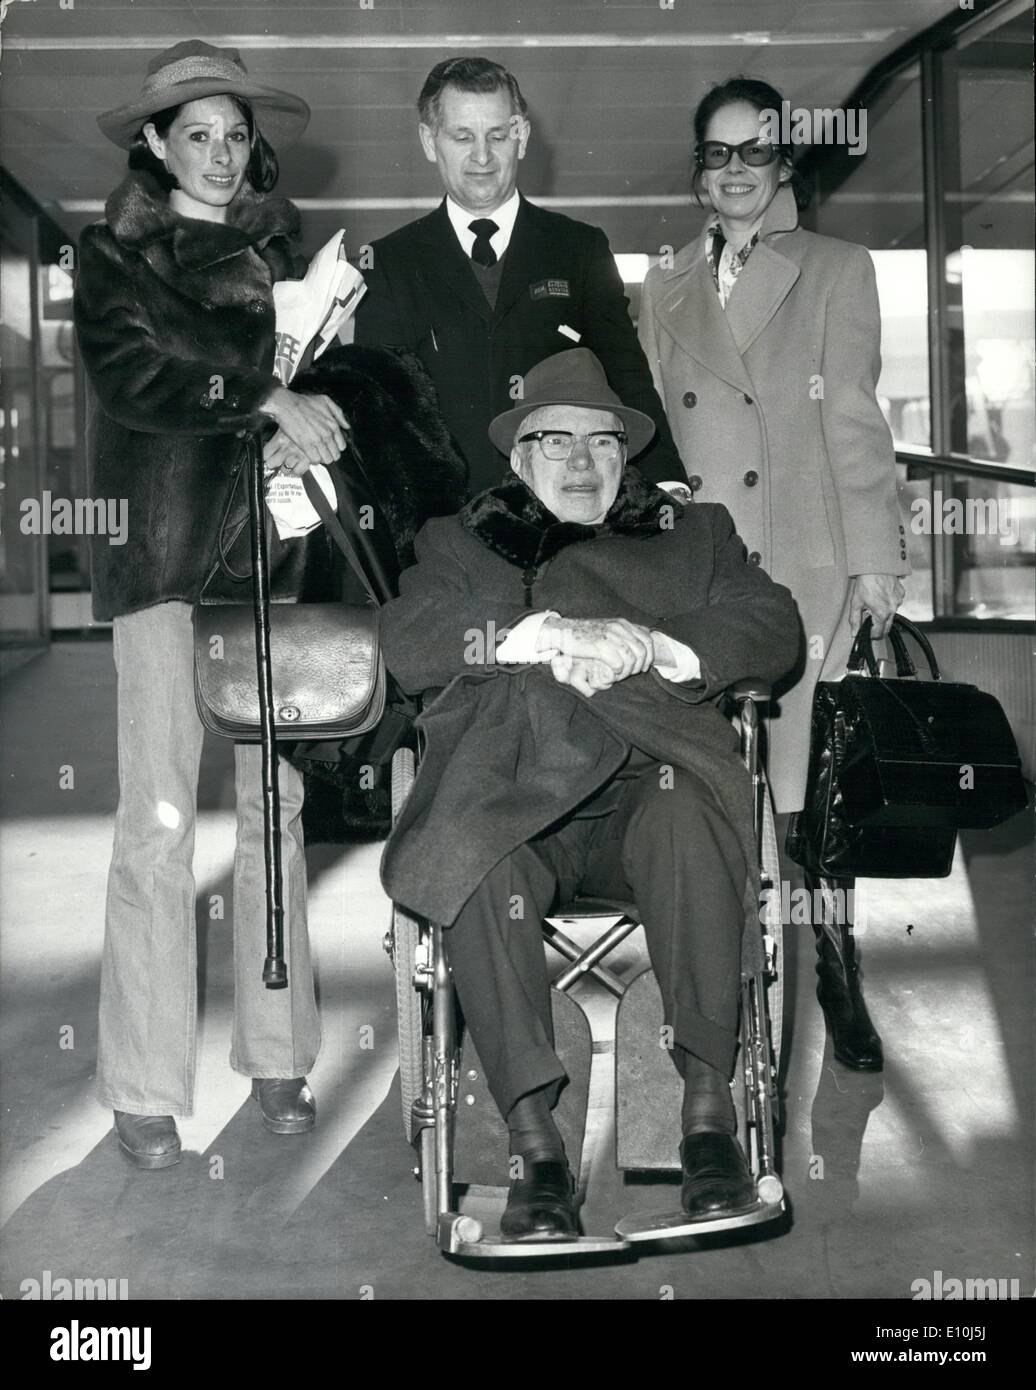 mar 03 1973 a wheelchair for charlie chaplin as he arrives here stock photo 69470398 alamy. Black Bedroom Furniture Sets. Home Design Ideas